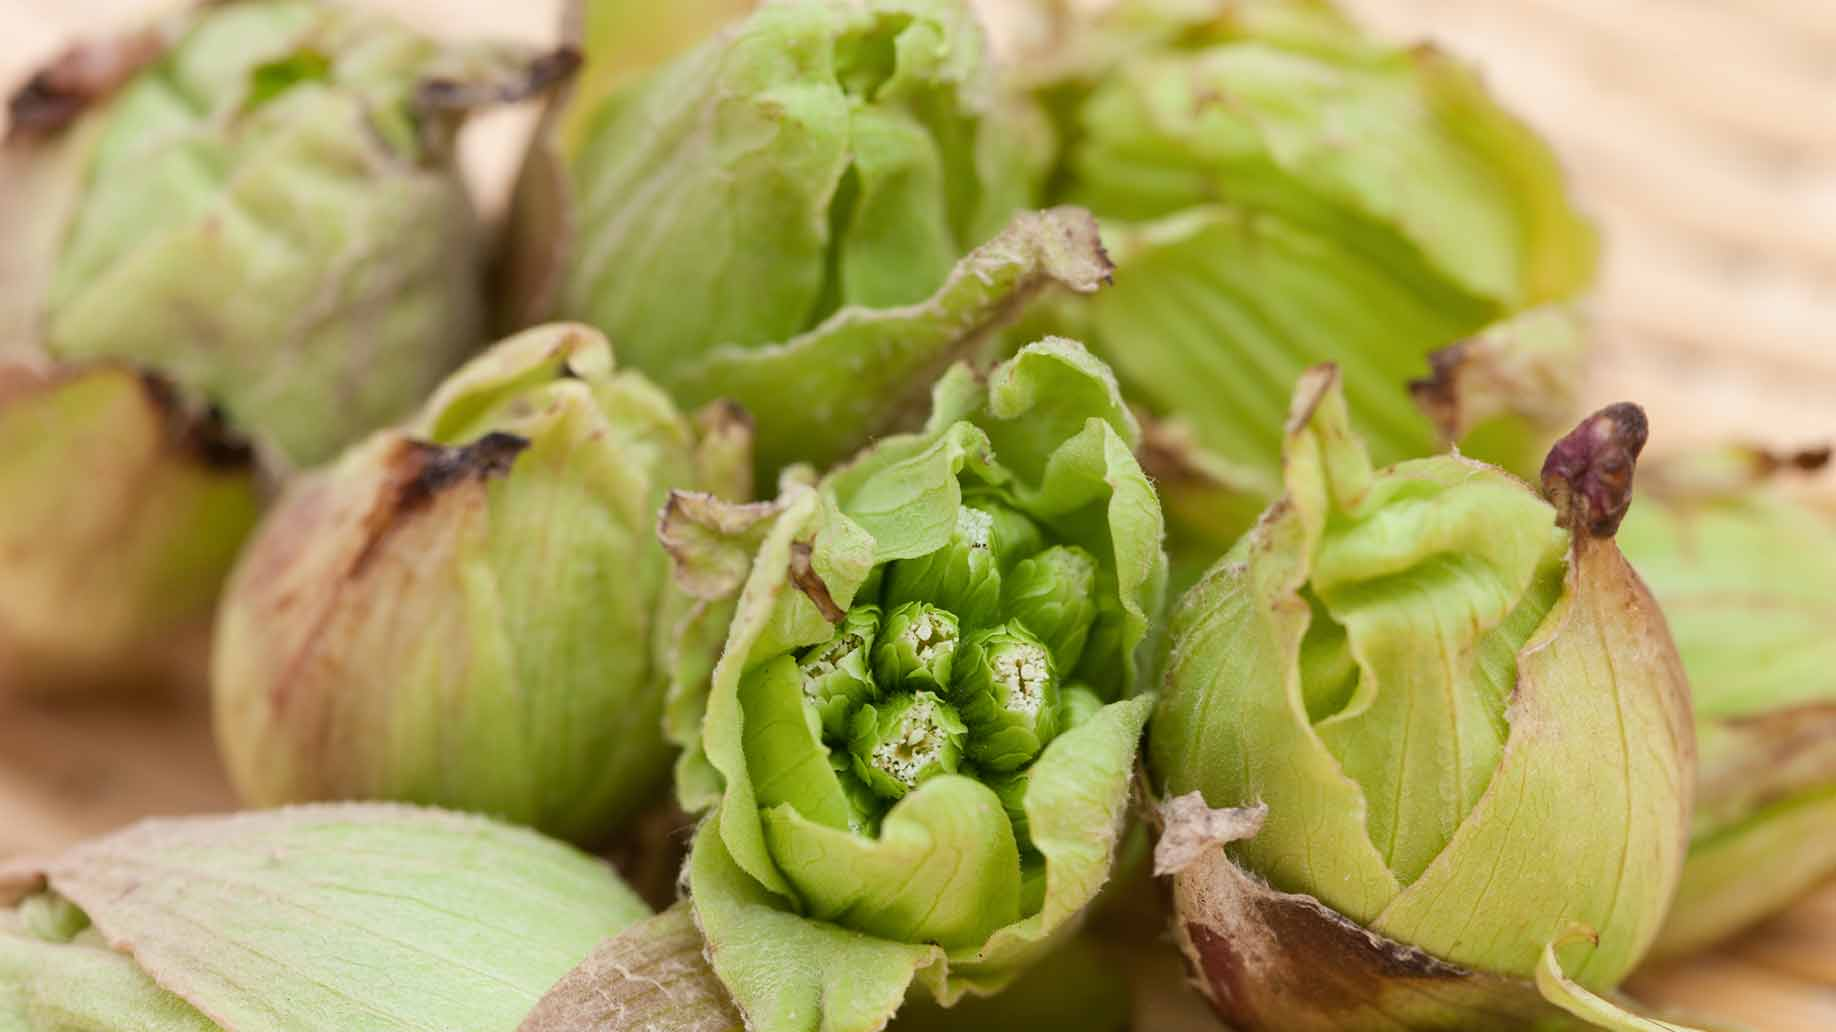 butterbur sprouts green seeds buds headaches migraines natural remedies